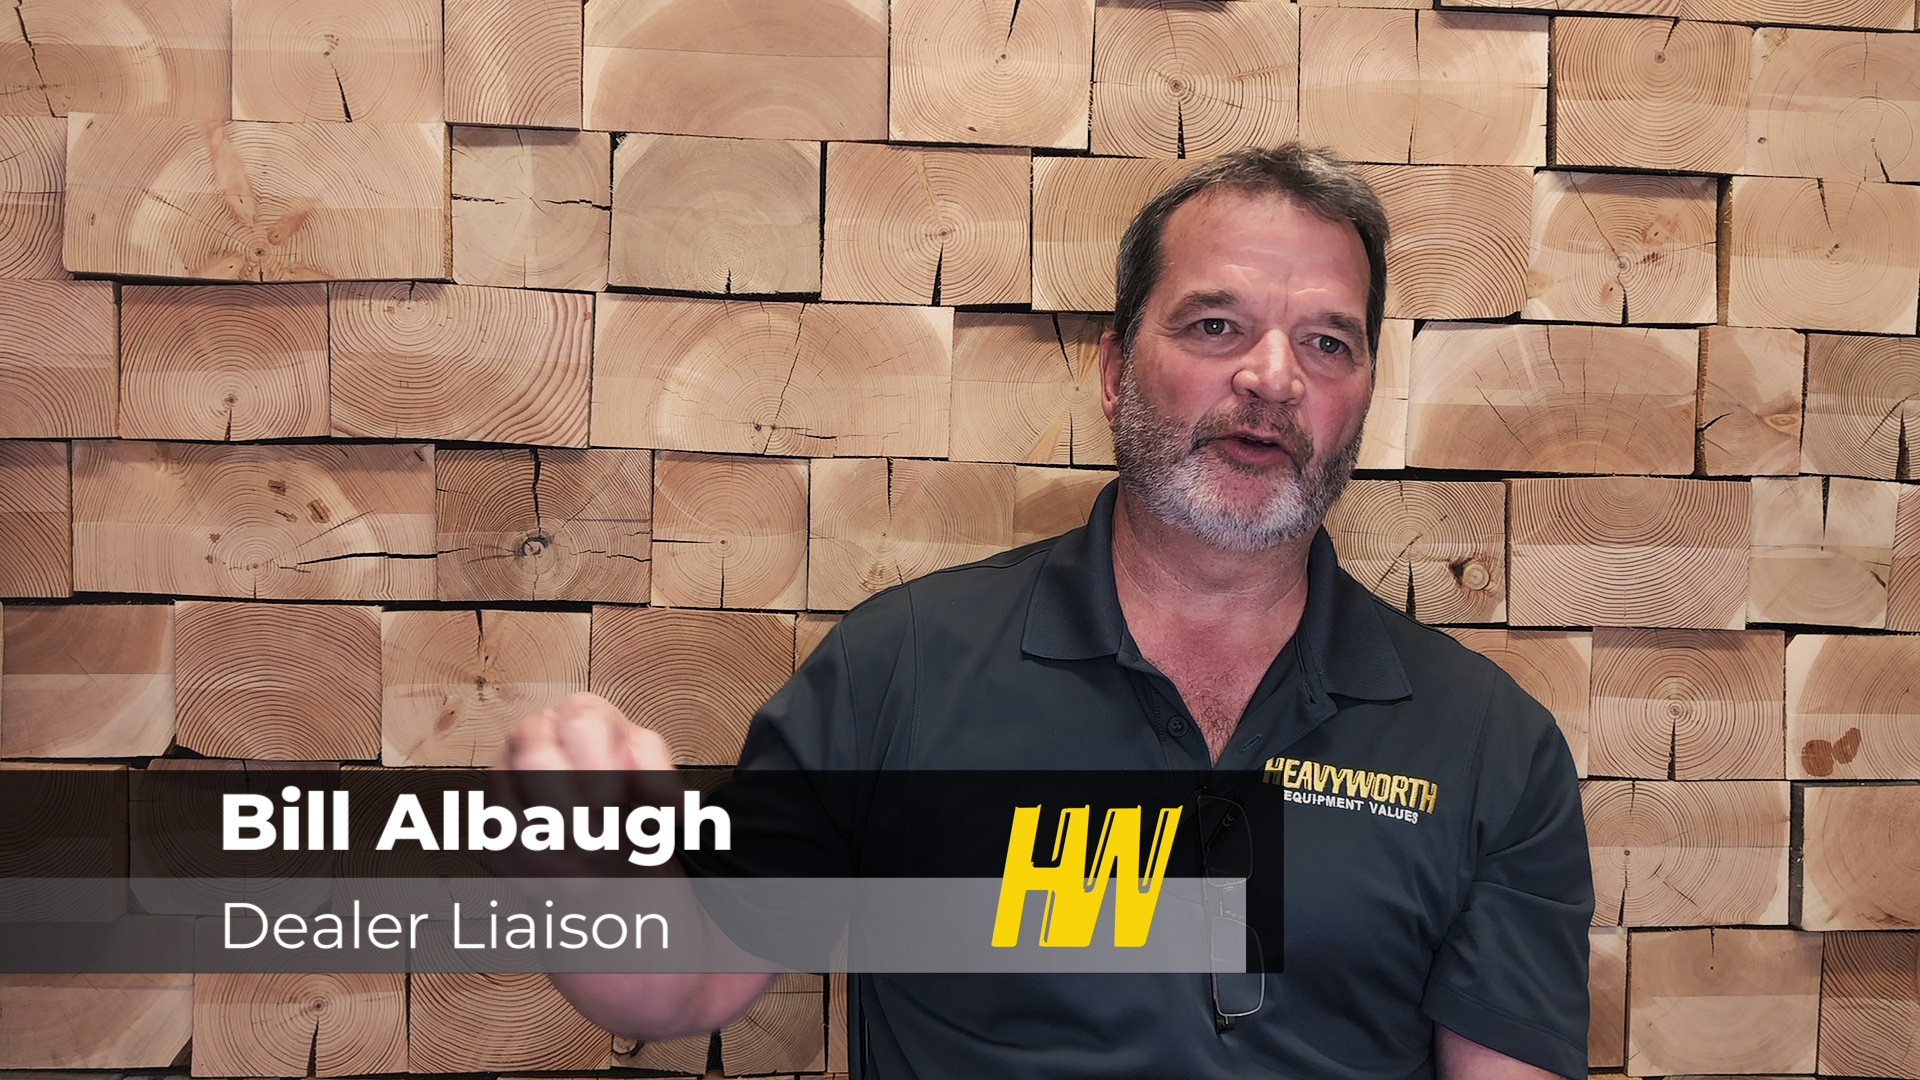 Bill Albaugh explains what he looks at when assigning accurate values to self-propelled sprayers and floaters for dealerships taking them in on trade.